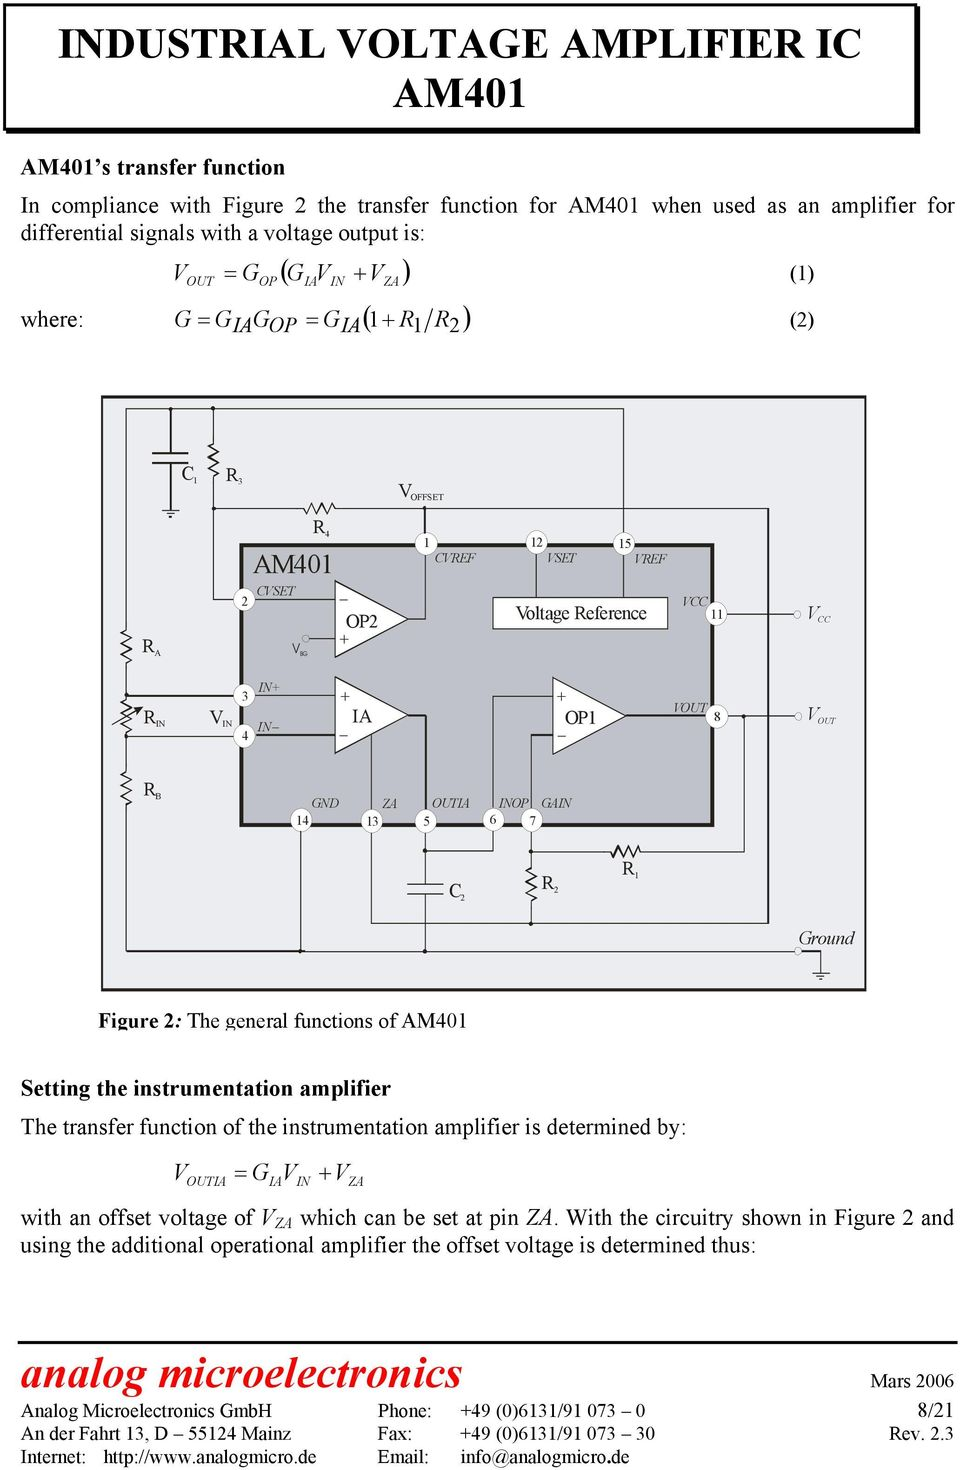 Industrial Voltage Amplifier Ic Am401 Principle Function Pdf Regulated Power Supply Circuit Diagram Composed Of Ca723c The General Functions Setting Instrumentation Transfer Is